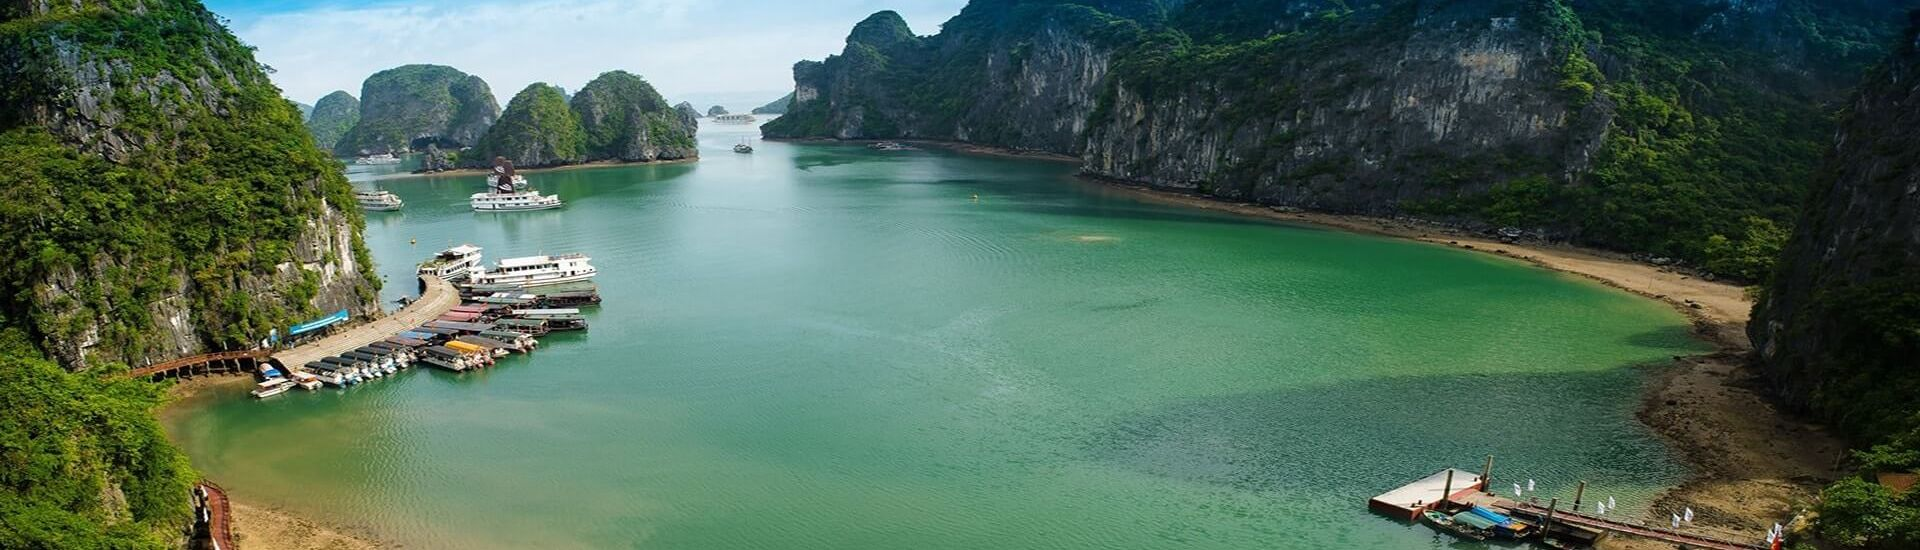 halong-bay-tour-vietnam